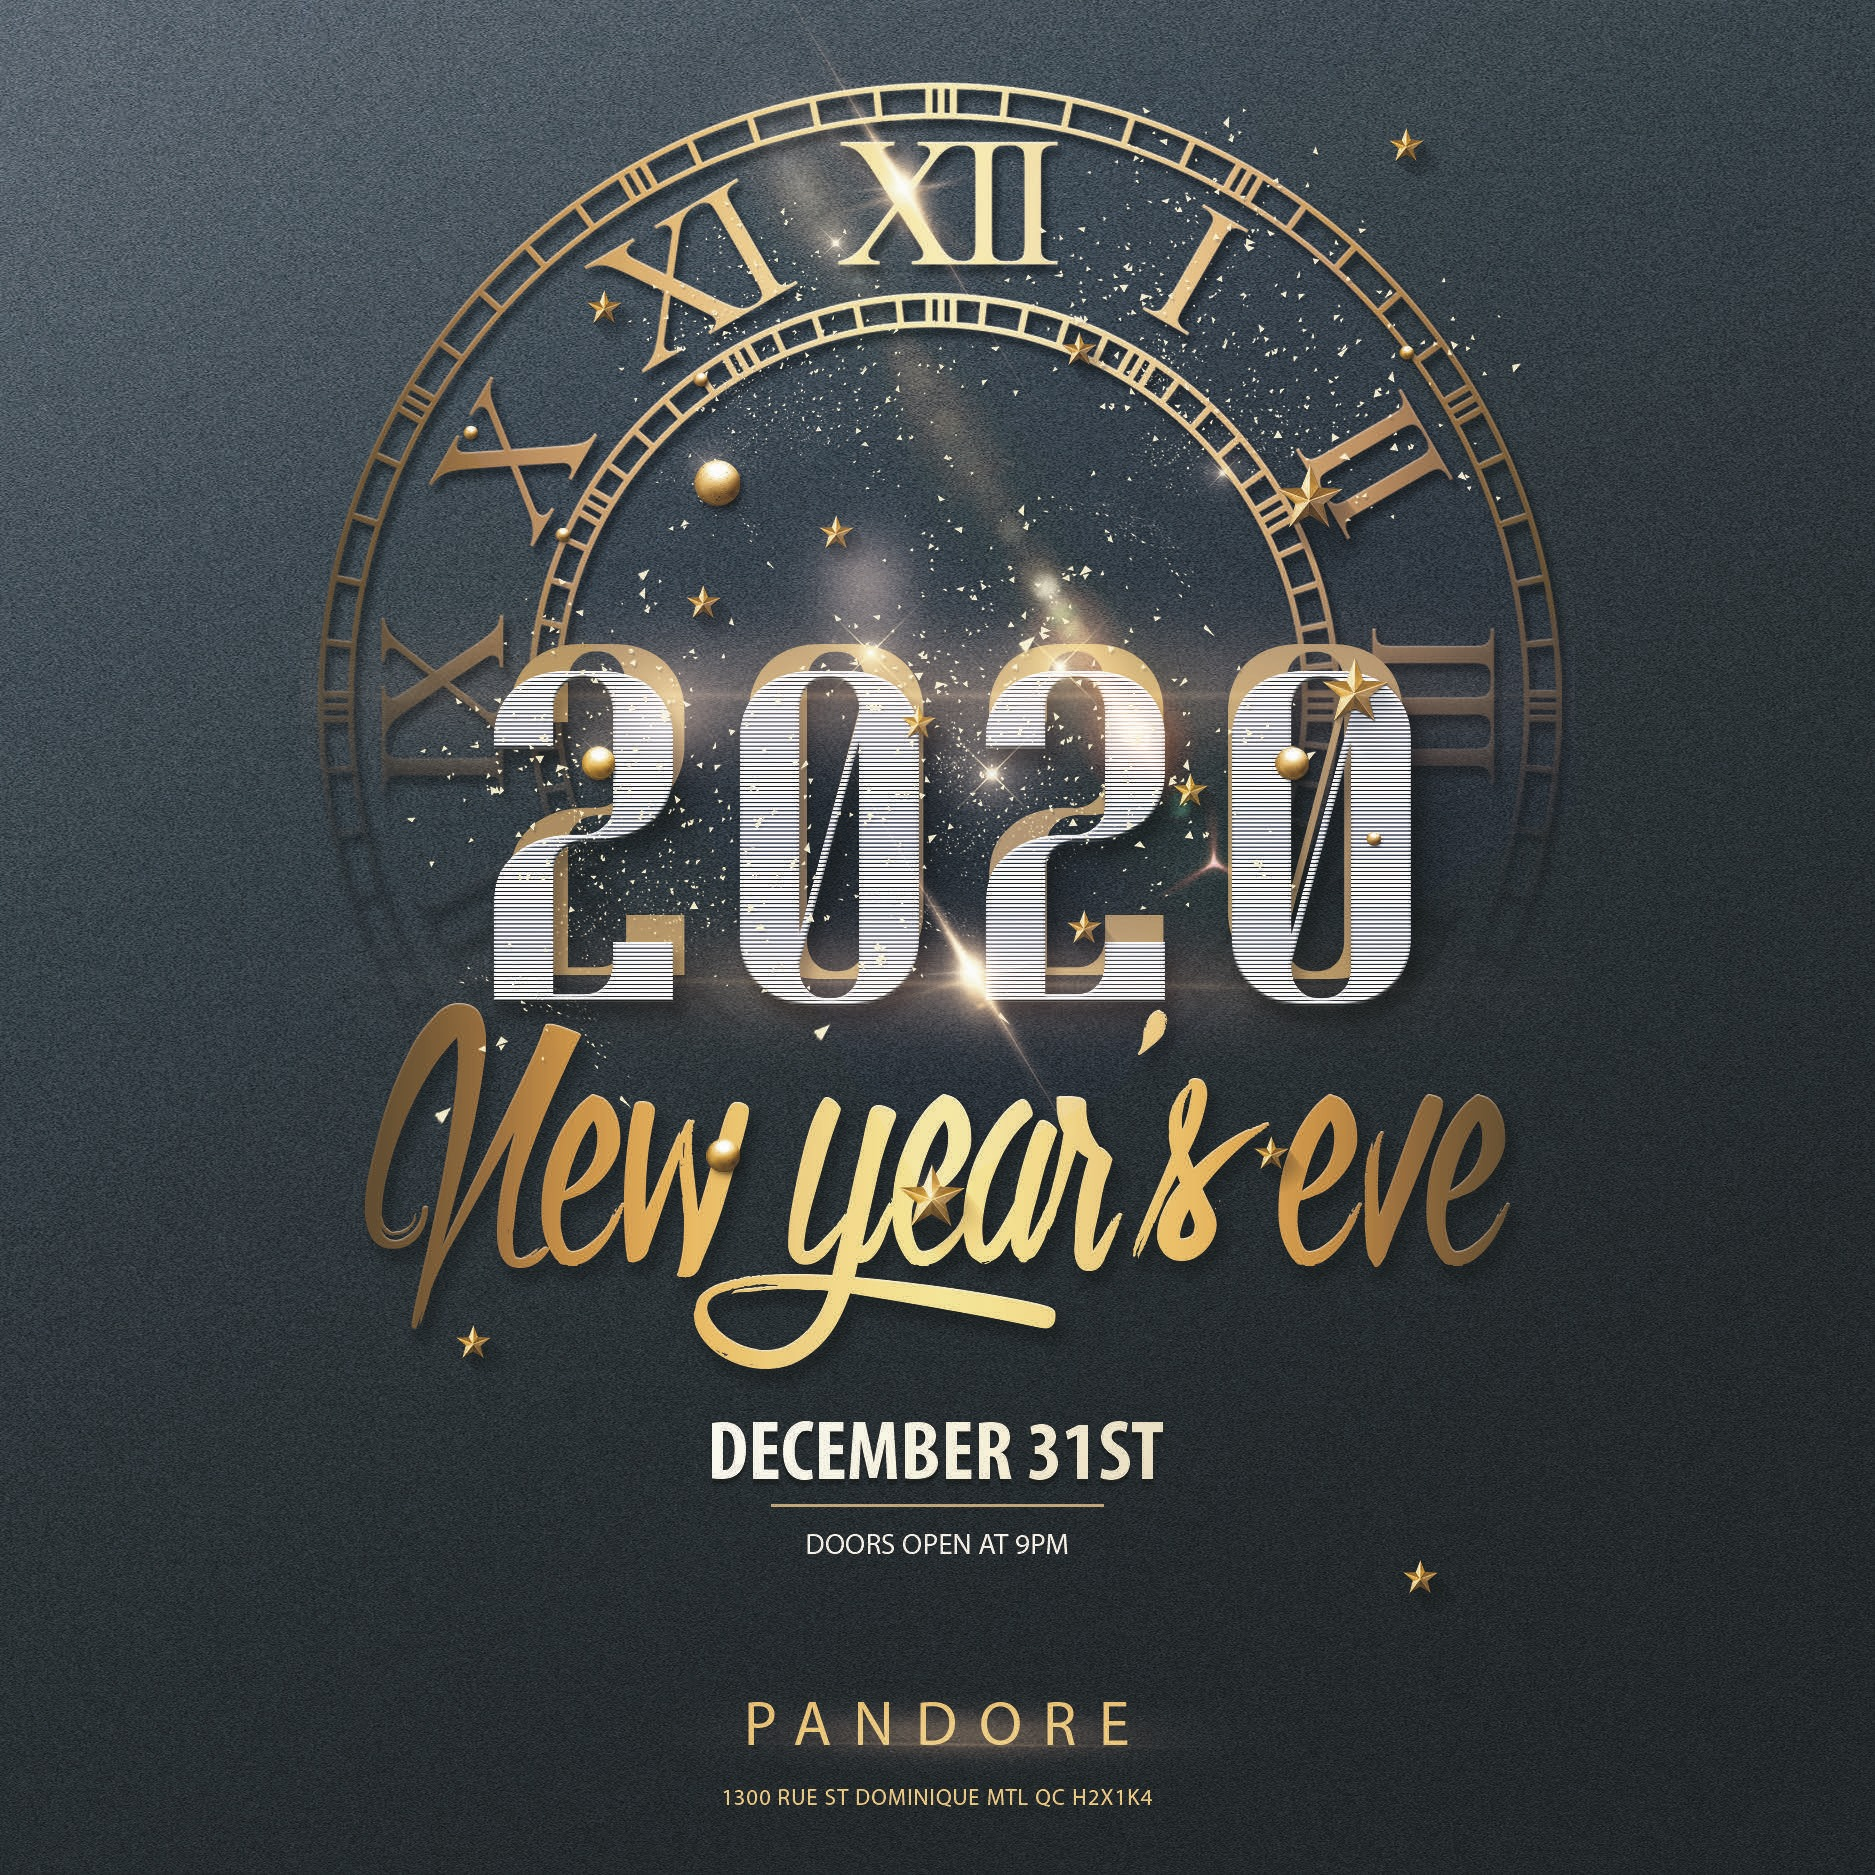 event-new-years-eve-2020